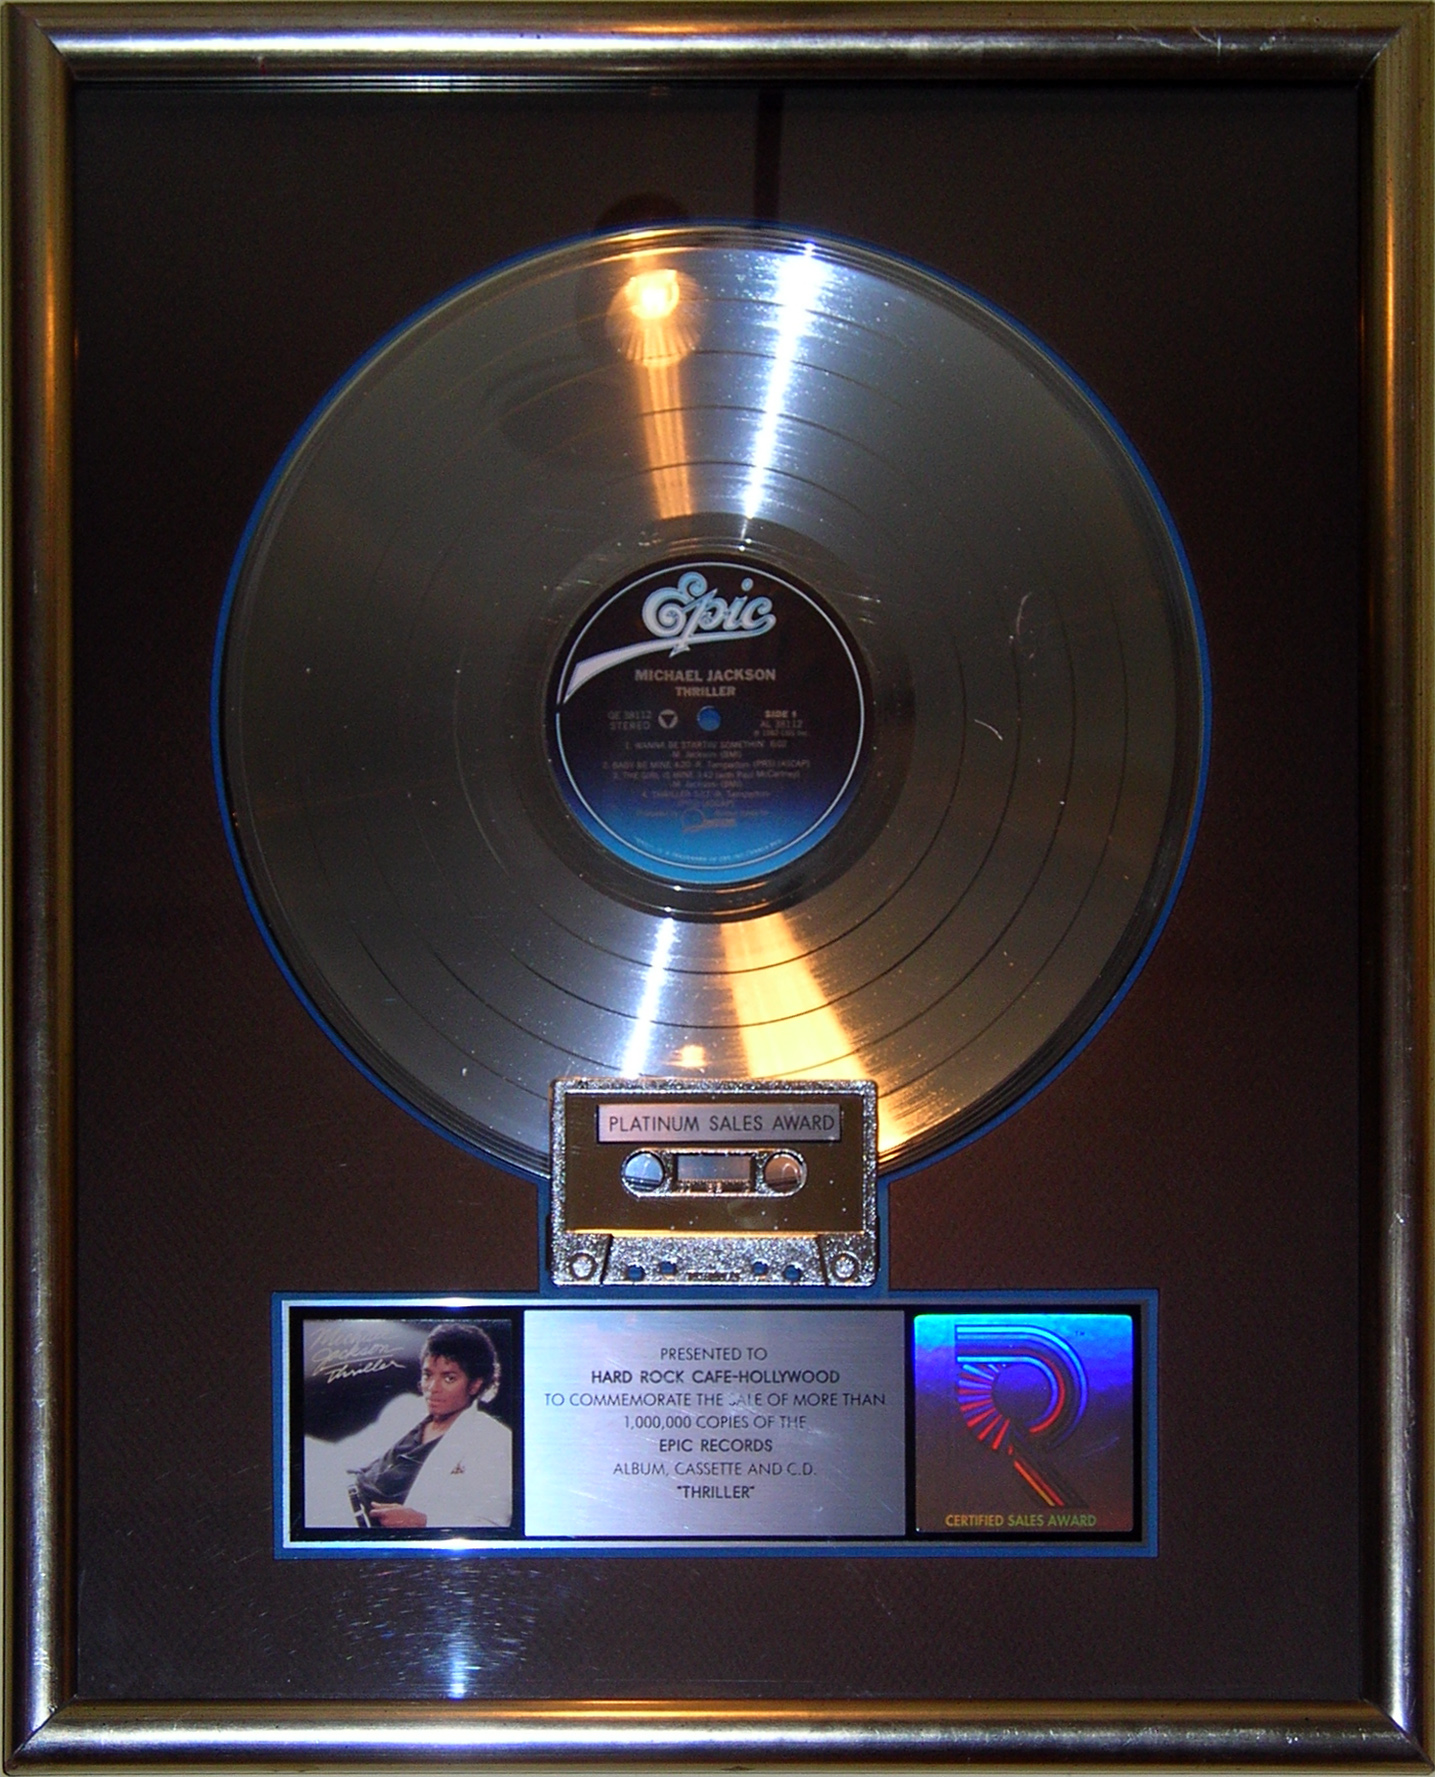 History Platinum: File:Thriller Platinum Record, Hard Rock Cafe Hollywood